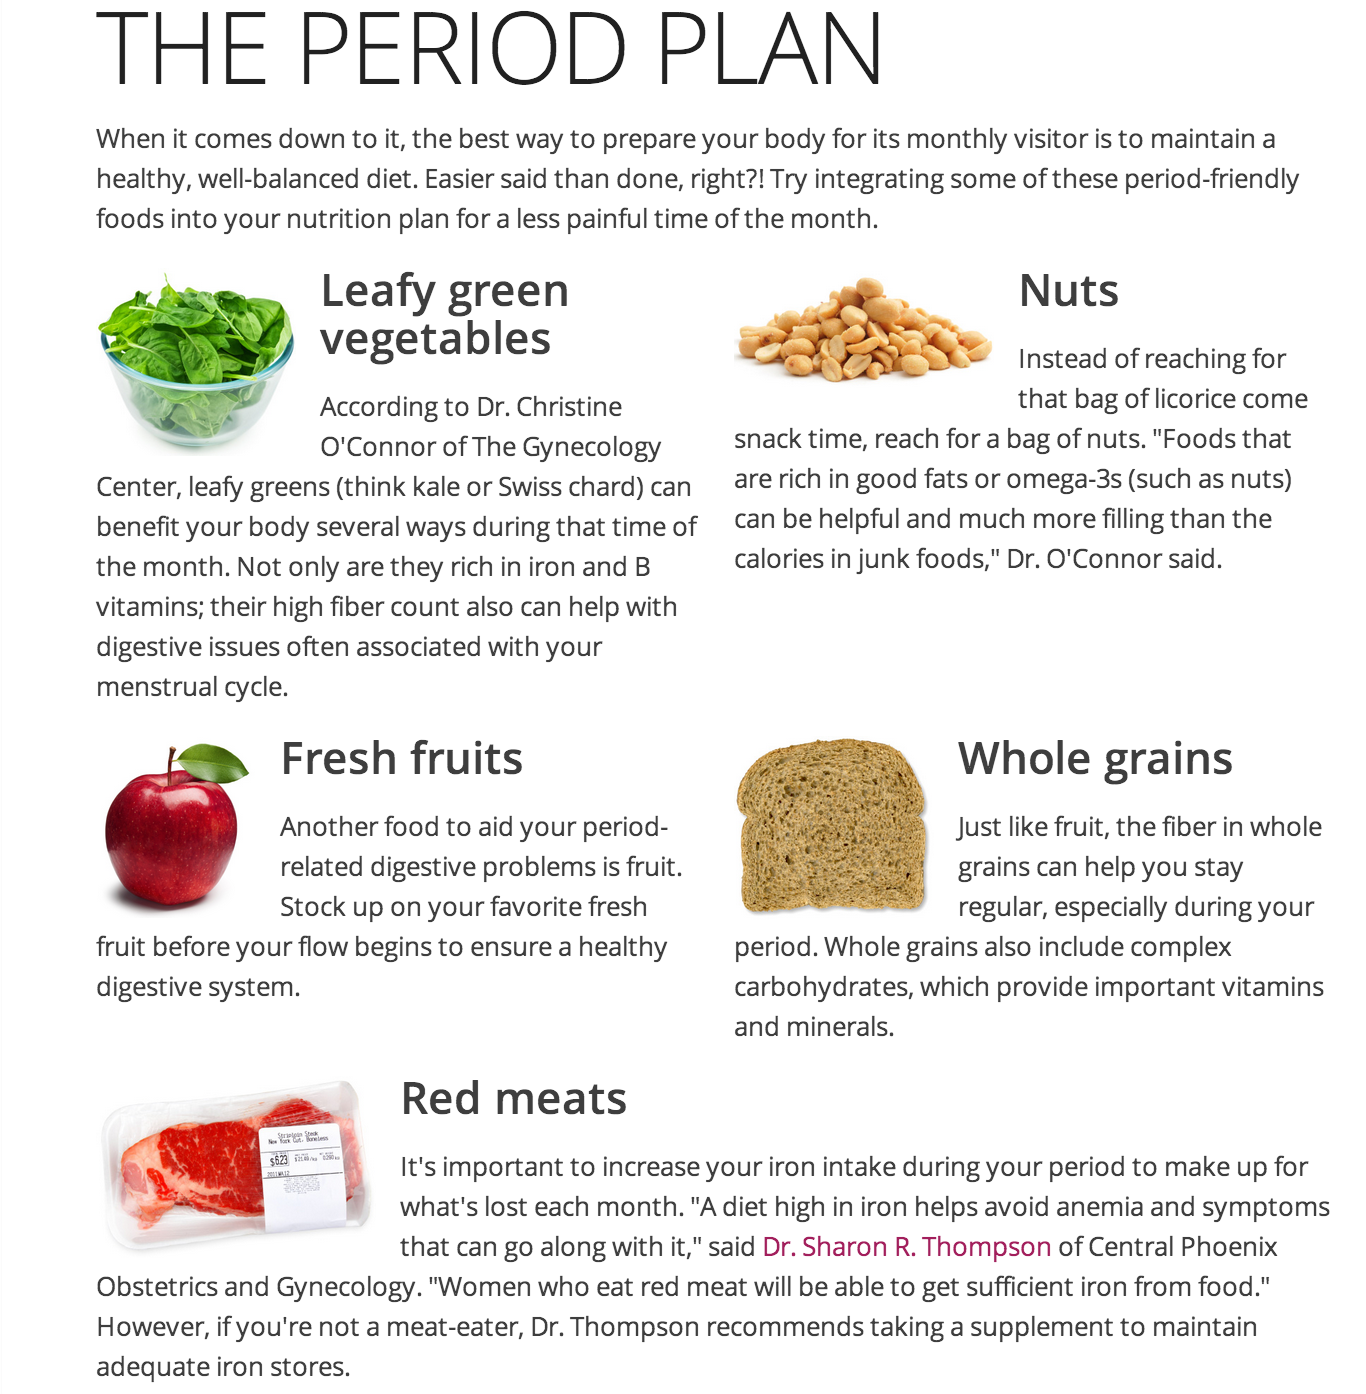 5 Foods You Should Eat During Your Period Http Www Sheknows Com Health And Wellness Articles 950629 5 Foods You Should Health Facts Food Food Food Articles